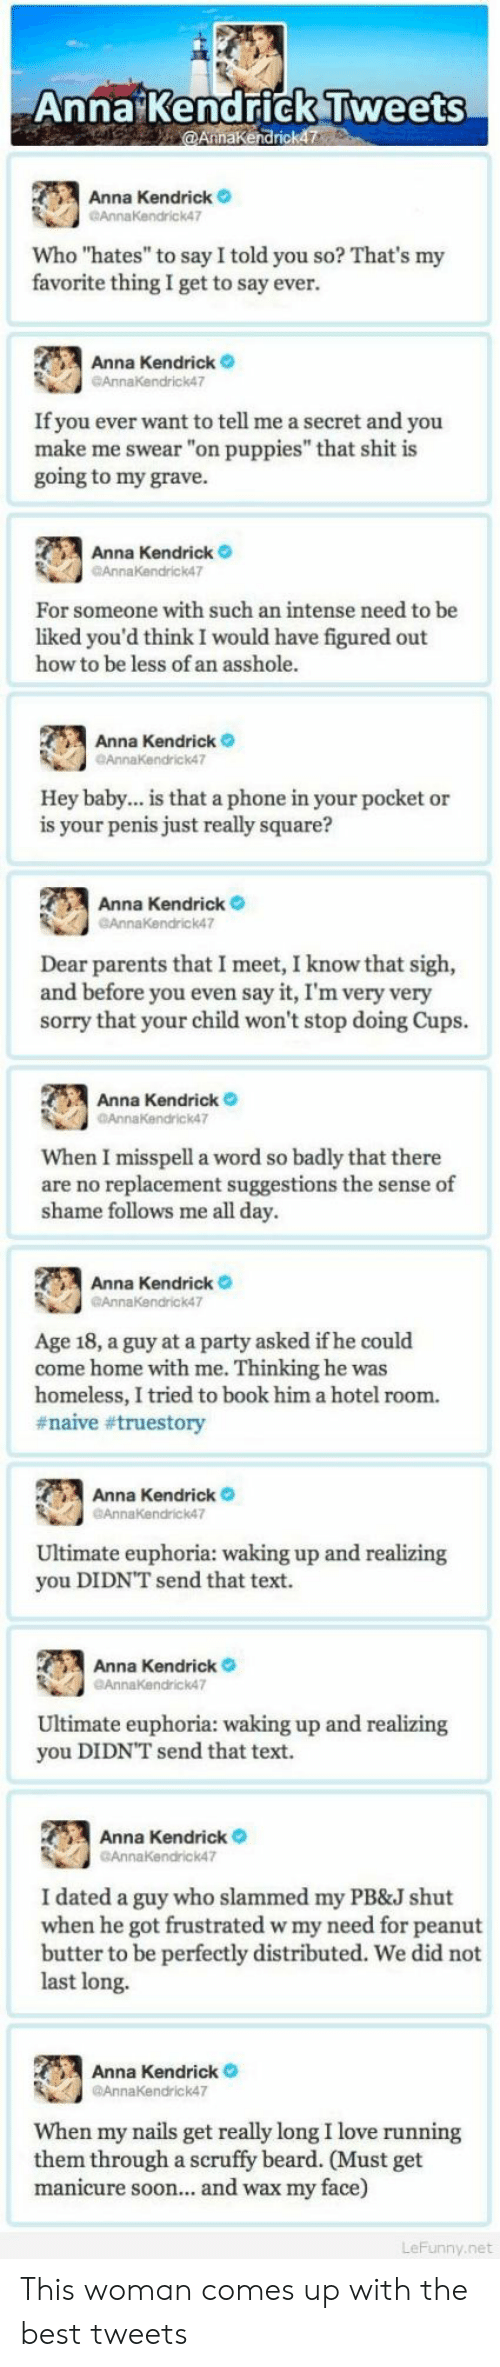 "Anna, Anna Kendrick, and Beard: Anna Kendrick Tweets  aKendrick  , Anna Kendrick  GAnnaKendrick47  Who ""hates"" to say I told you so? That's my  favorite thing I get to say ever.  Anna Kendrick  If you ever want to tell me a secret and you  make me swear ""on puppies"" that shit is  going to my grave.  Anna Kendrick  AnnaKendrick47  For someone with such an intense need to be  liked you'd think I would have figured out  how to be less of an asshole.  Anna Kendrick  Hey baby... is that a phone in your pocket or  is your penis just really square?  Anna Kendrick  Annakendrick47  Dear parents that I meet, I know that sigh,  and before you even say it, I'm very very  sorry that your child won't stop doing Cups.  Anna Kendrick o  AnnaKendrick47  When I misspell a word so badly that there  are no replacement suggestions the sense of  shame follows me all day.  Anna  Kendrick。  Age 18, a guy at a party asked if he could  come home with me. Thinking he was  homeless, I tried to book him a hotel room.  #naive #truestory  Anna Kendrick  Ultimate euphoria: waking up and realizing  you DIDNT send that text.  Anna Kendrick  Ultimate euphoria: waking up and realizing  you DIDN'T send that text.  Anna Kendrick  GAnnkendrick47  I dated a guy who slammed my PB&J shut  when he got frustrated w my need for peanut  butter to be perfectly distributed. We did not  last long.  Anna Kendrick  @AnnaKendrick47  When my nails get really long I love running  them through a scruffy beard. (Must get  manicure soon... and wax my face)  8  ny.net This woman comes up with the best tweets"